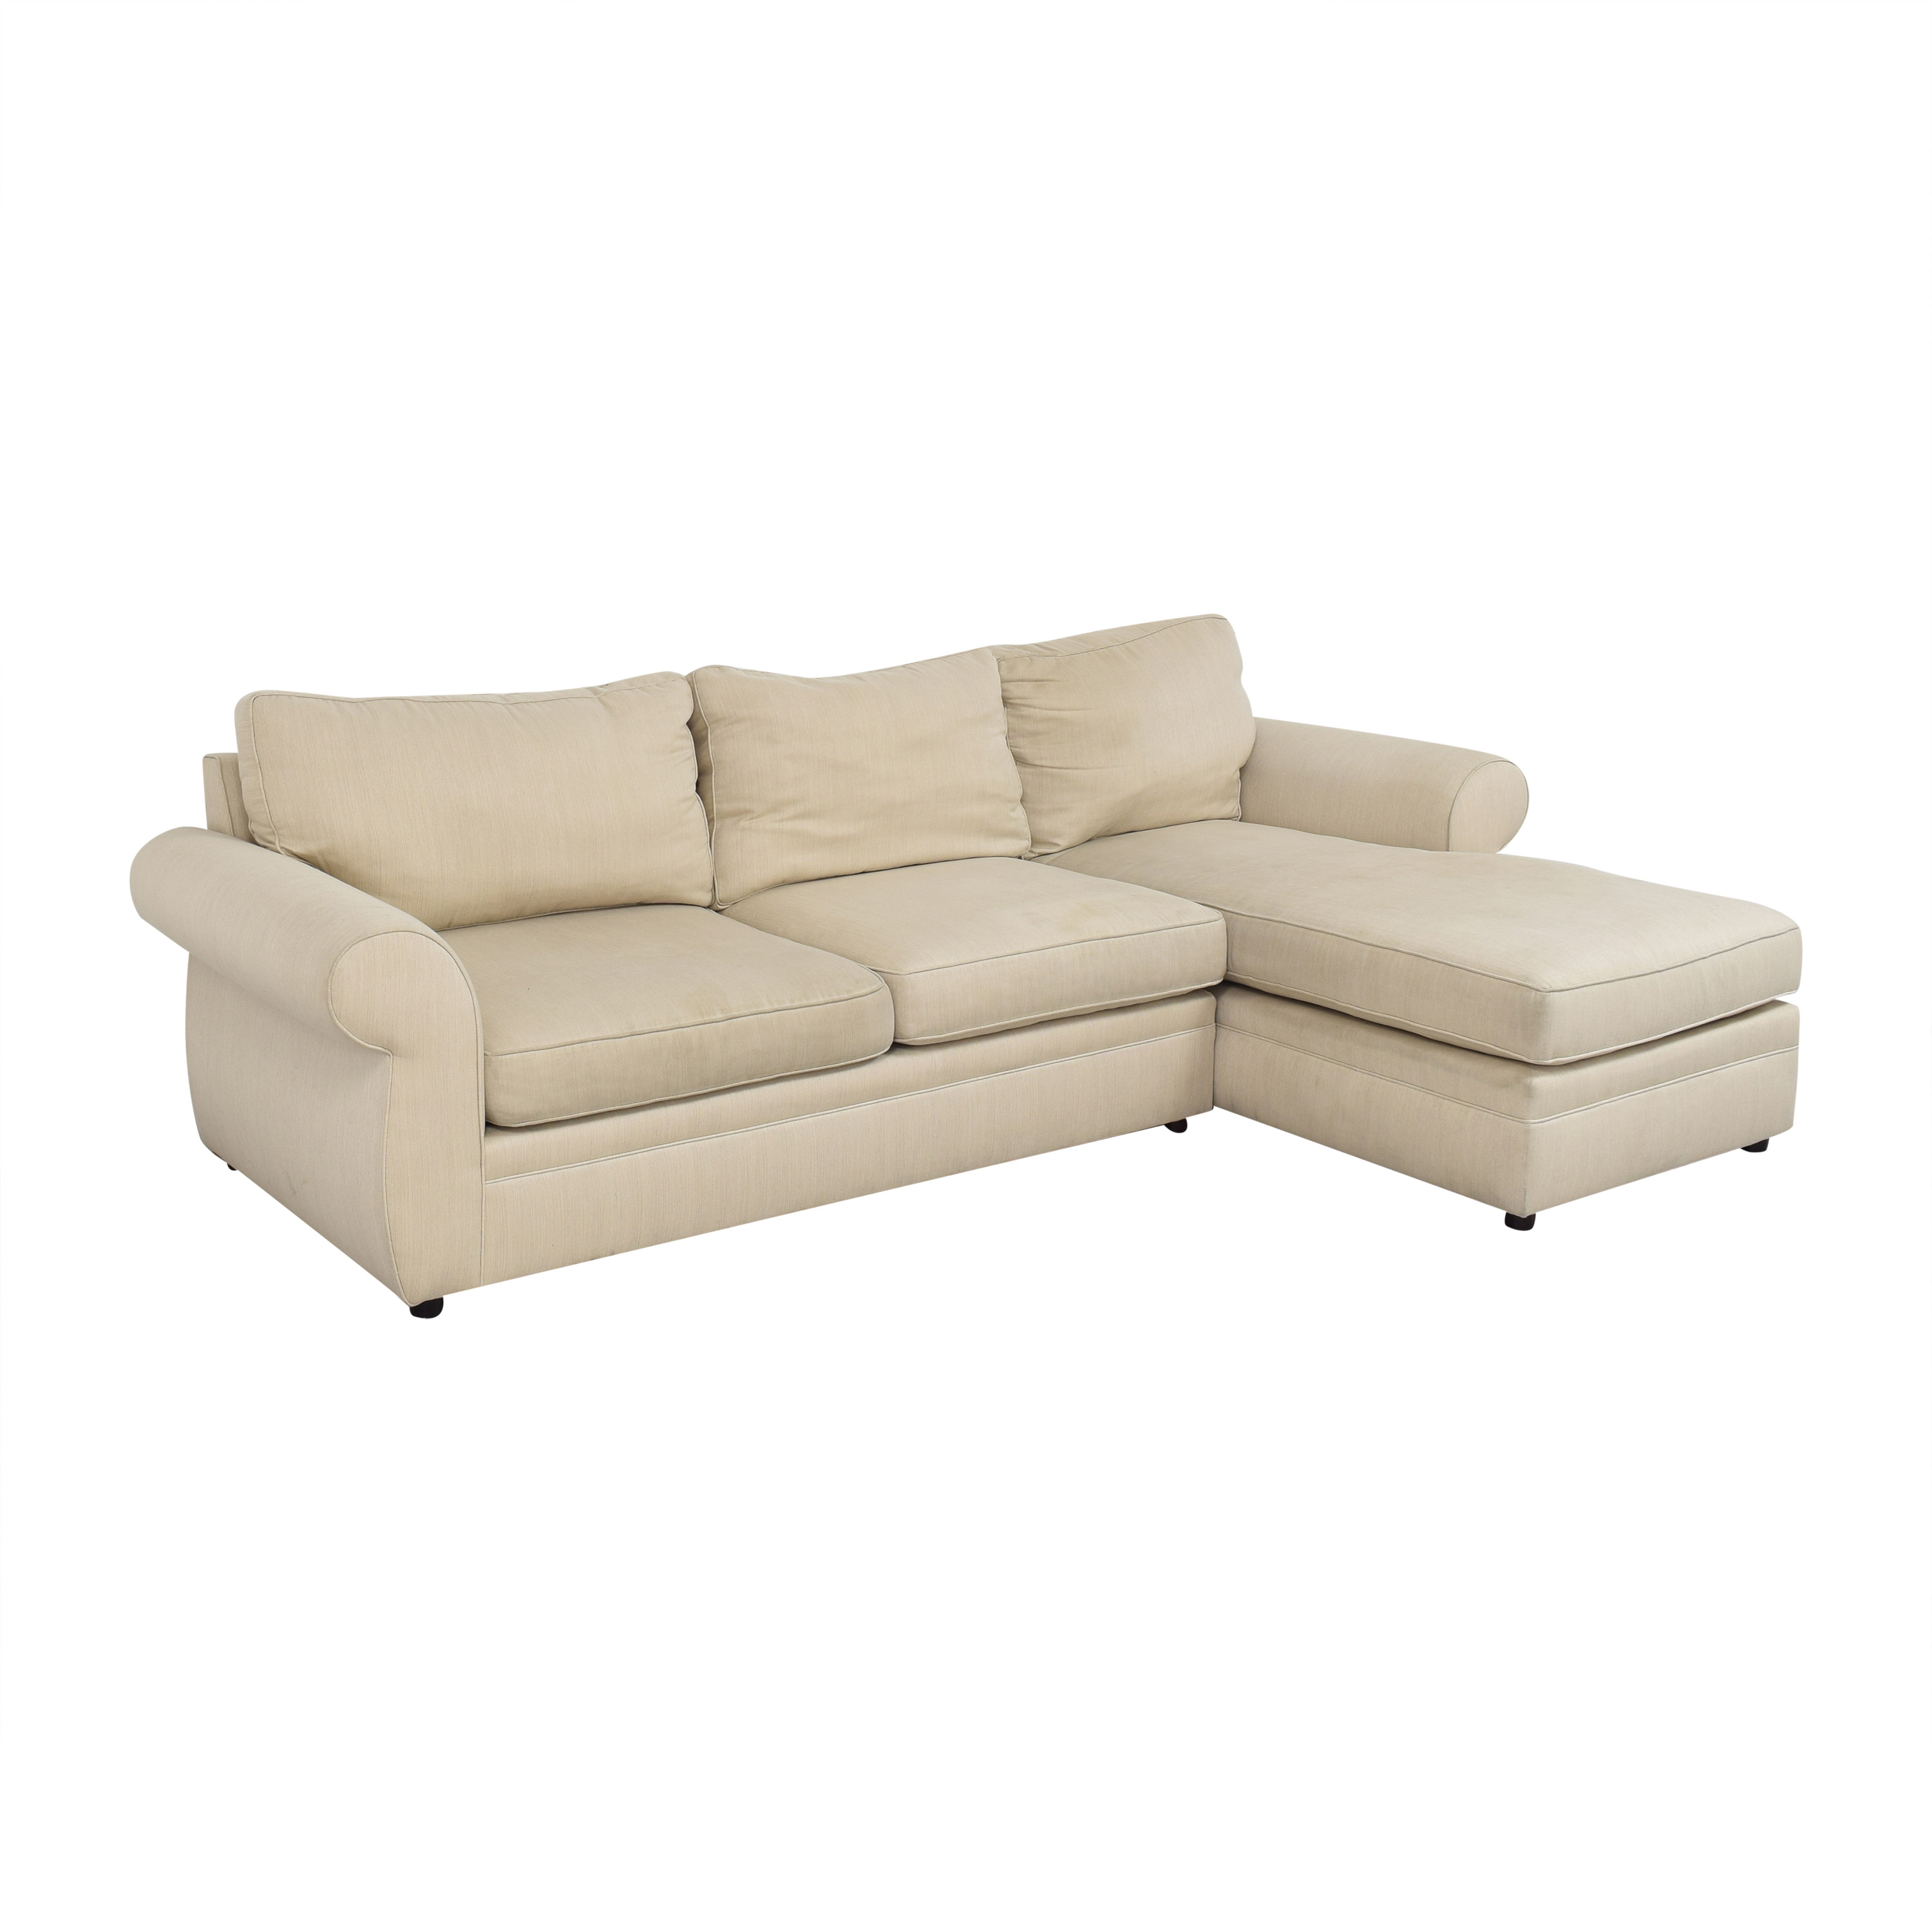 Pottery Barn Pearce Roll Arm Upholstered Chaise Sectional Sofa Pottery Barn